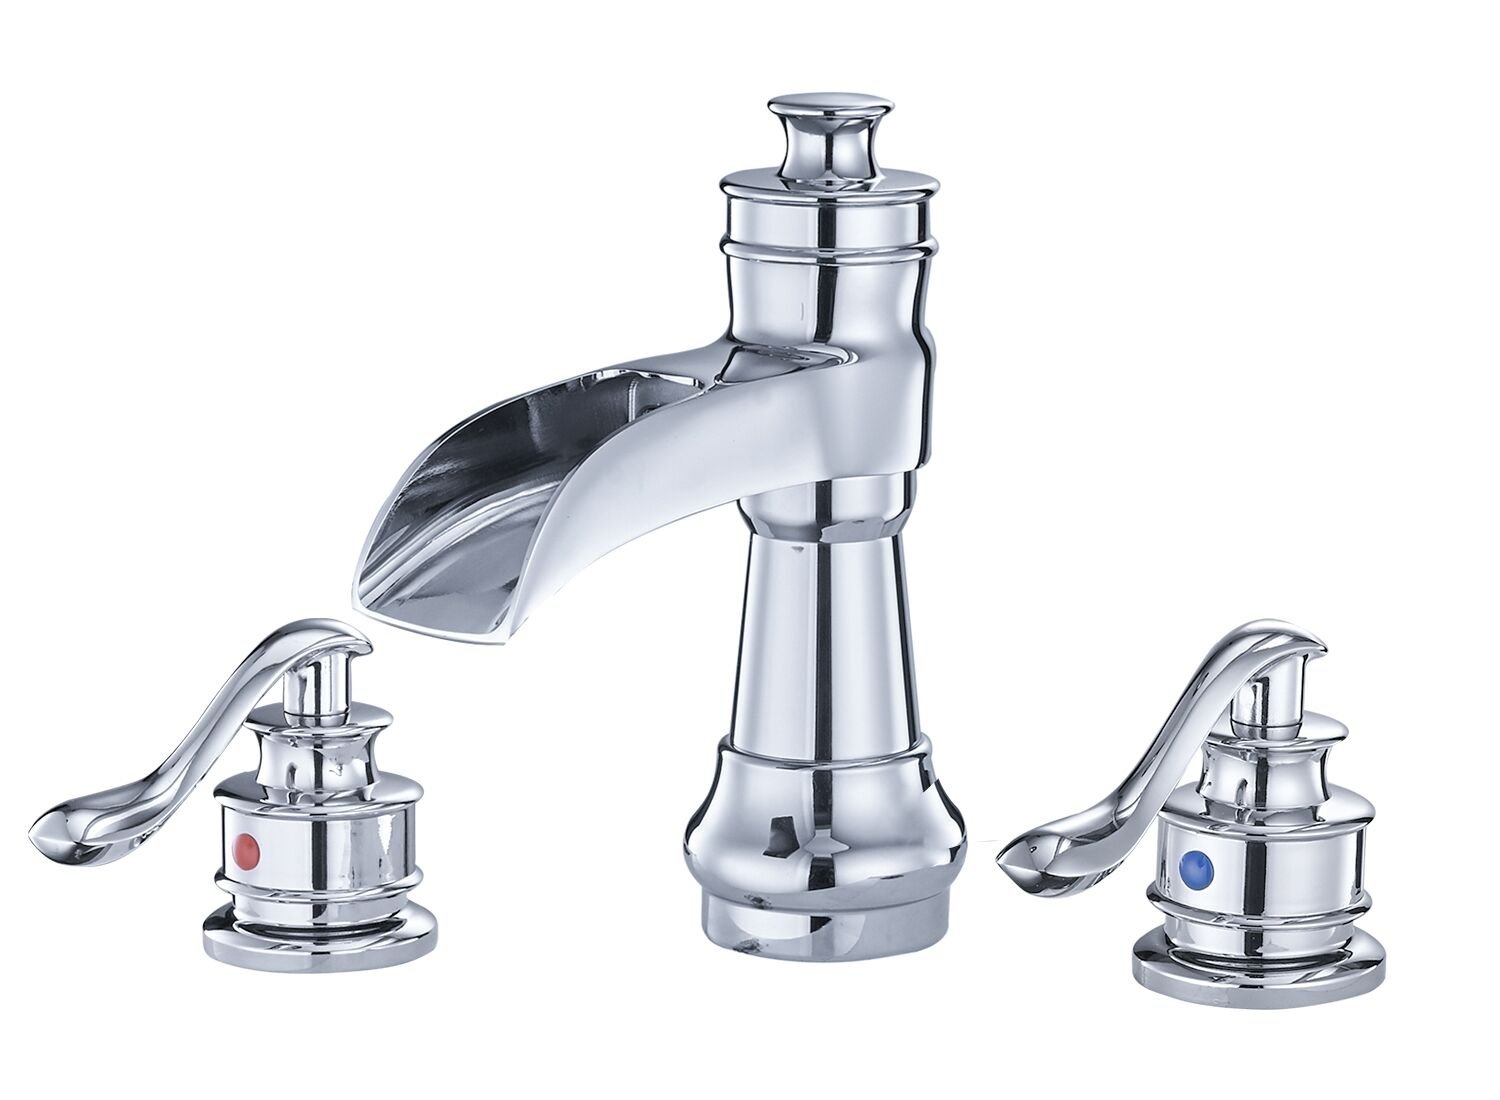 BWE Waterfall 8-16 Inch 3 Holes Two Handle Widespread Bathroom Sink Faucet Chrome